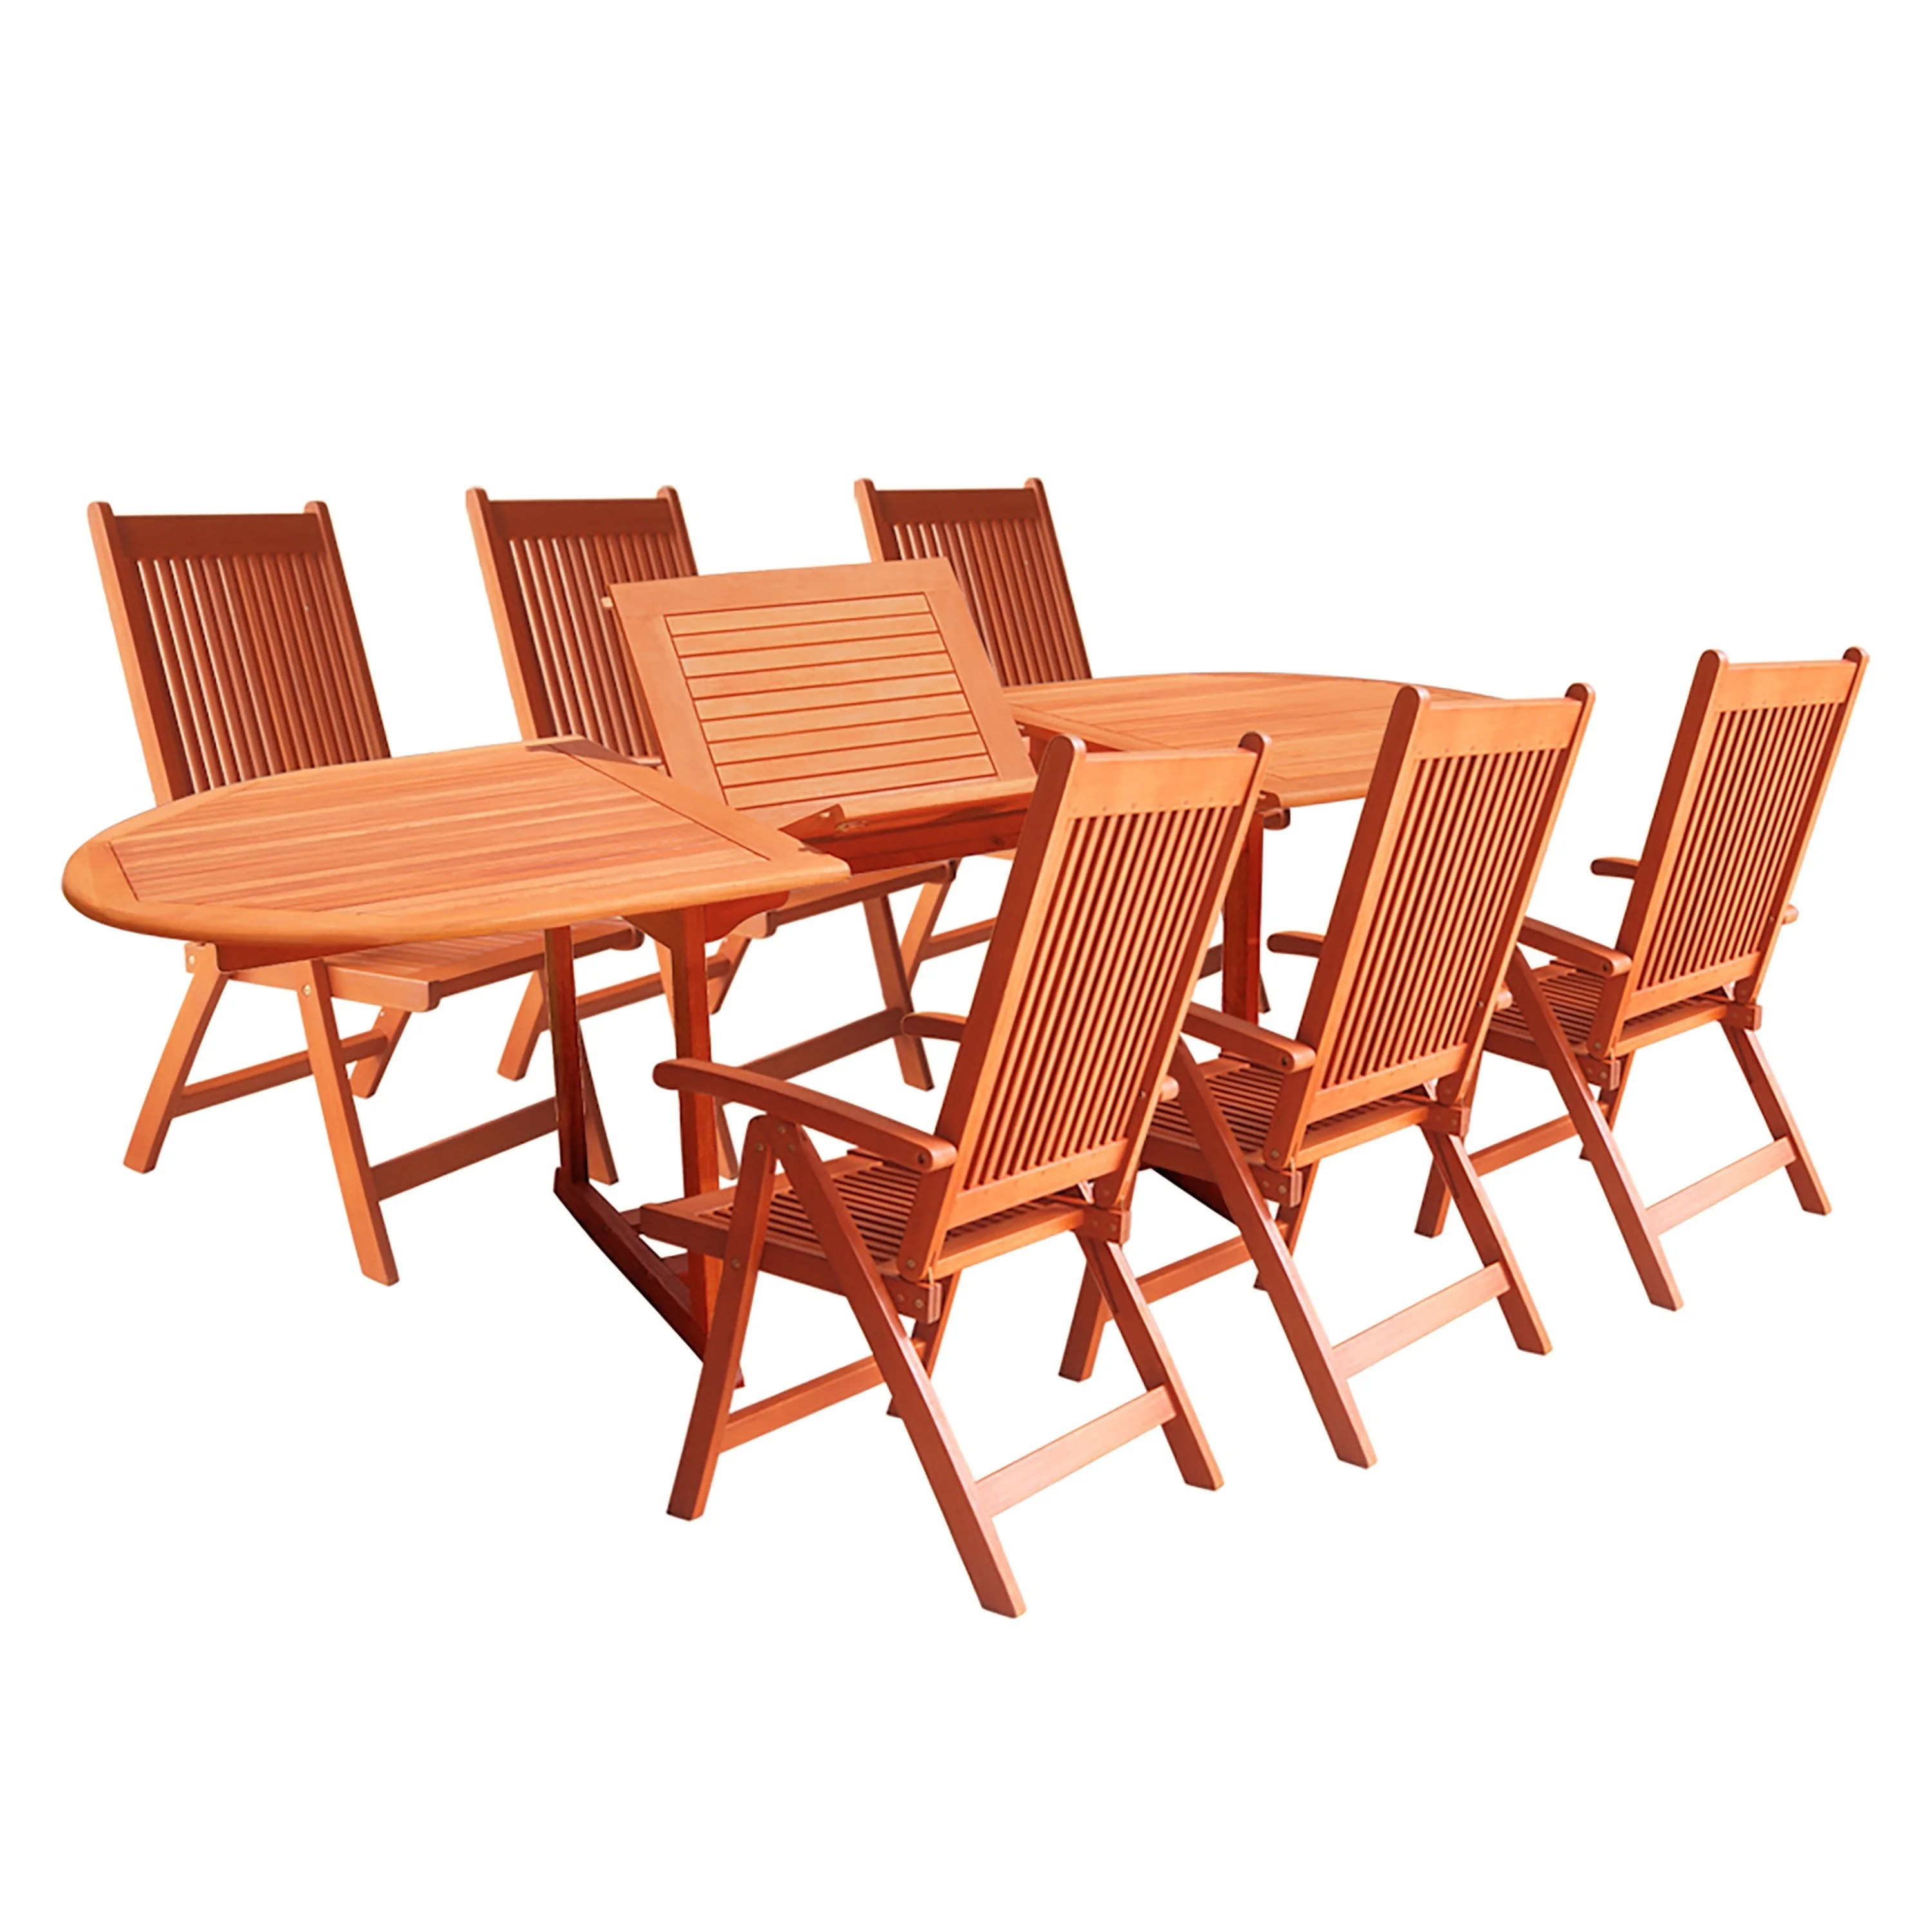 7 Piece Patio Set Shop Vista 7 Piece Patio Dining Set Free Shipping On Orders Over